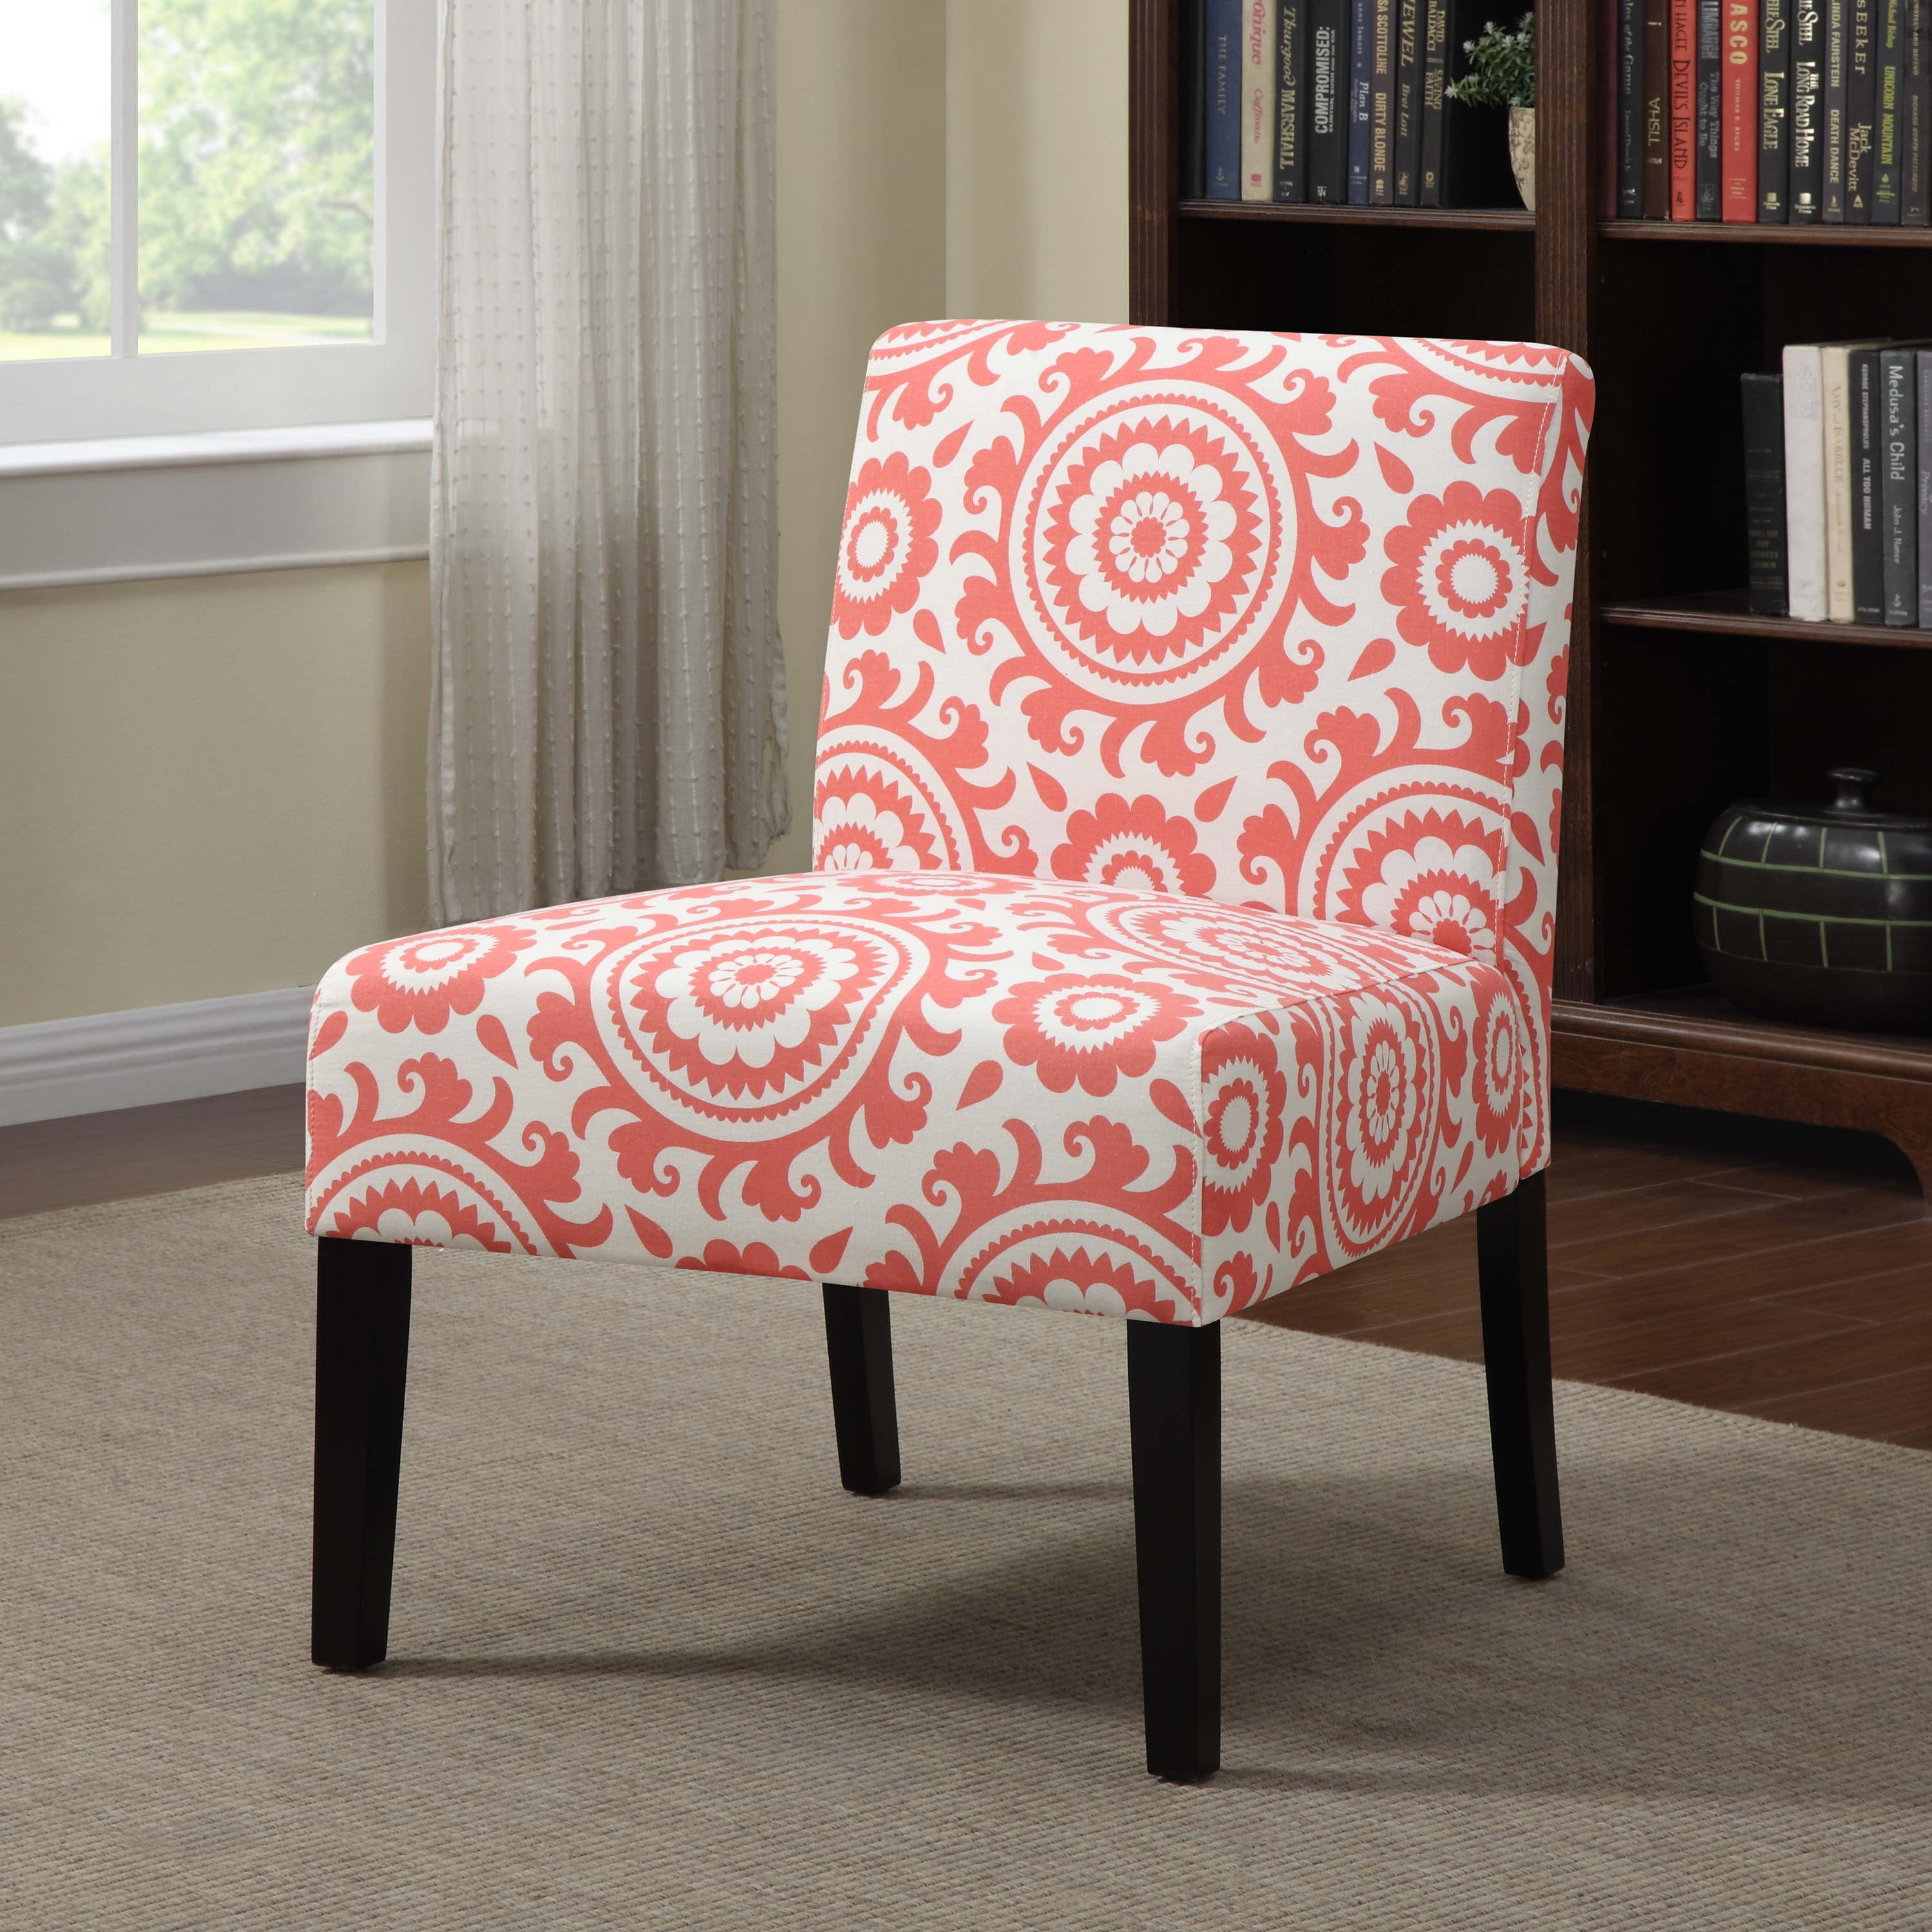 Coral Reef Motic Accent Chair: Portfolio Niles Pink Coral Medallion Armless Accent Chair